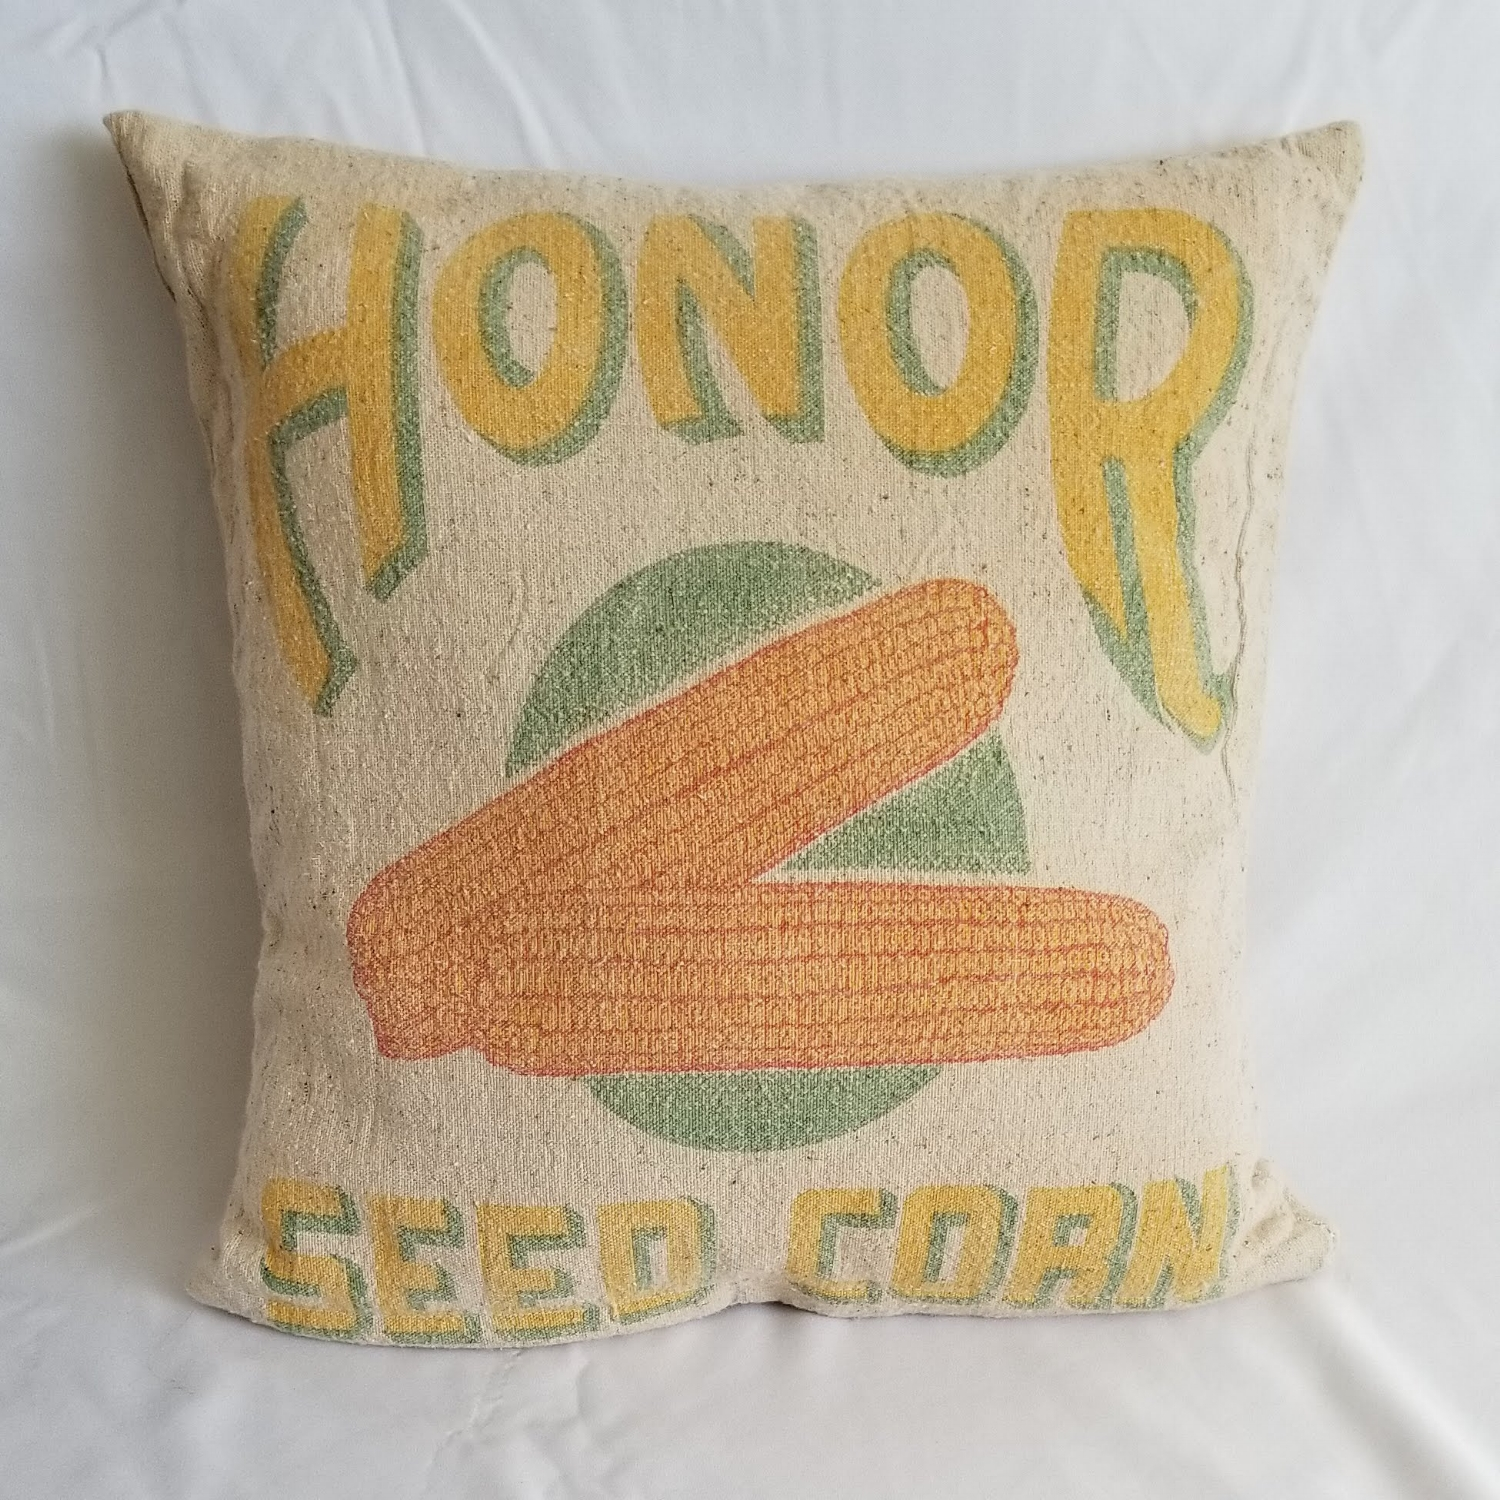 Grain Sack Pillow I